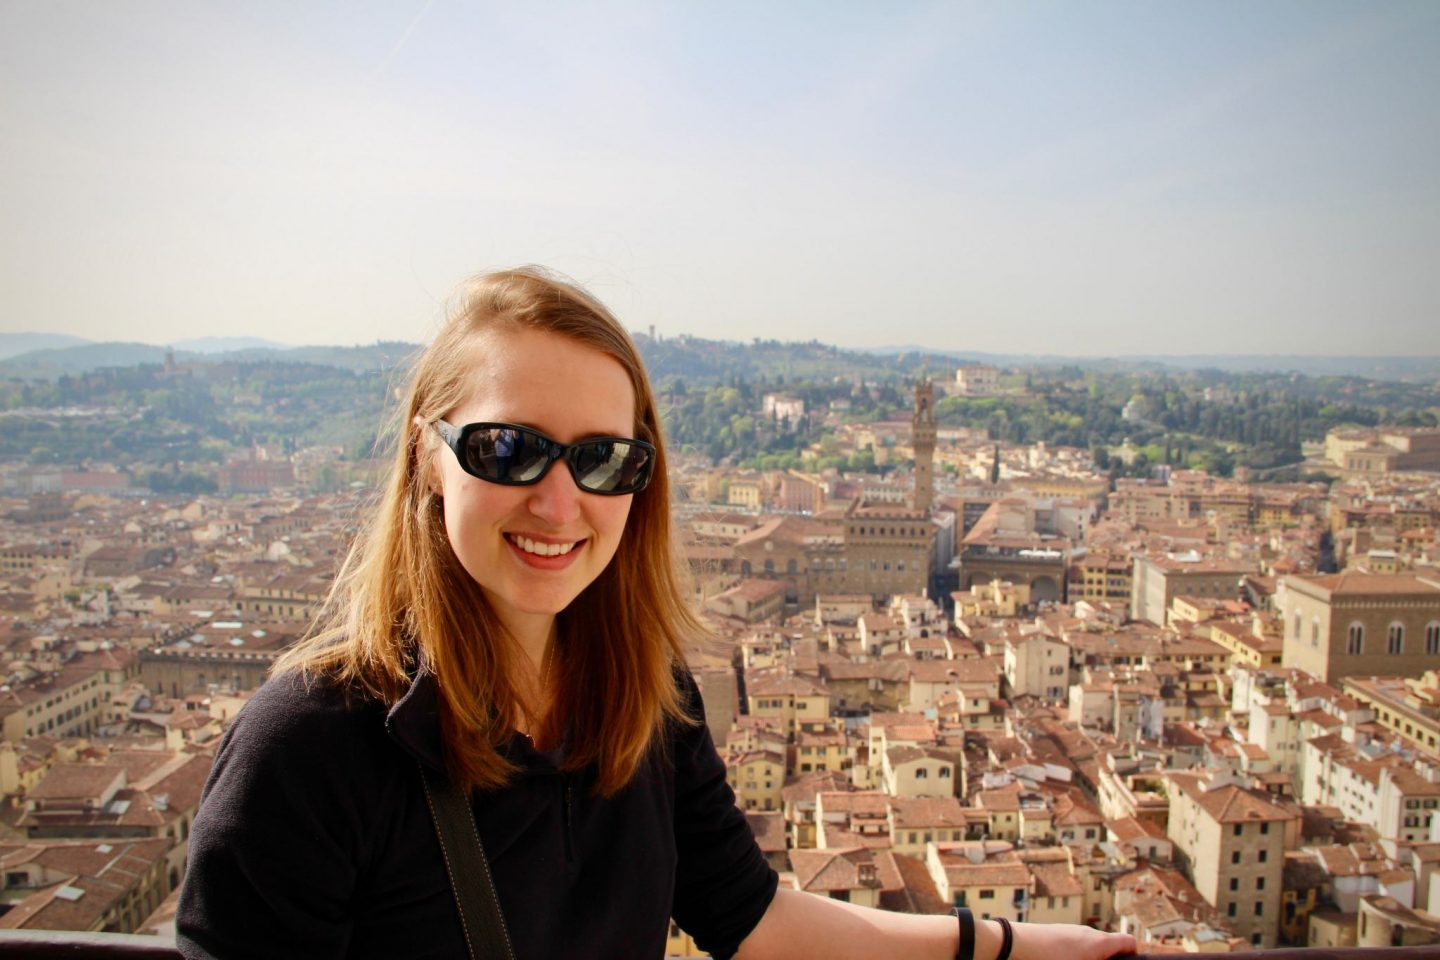 24 hour Travel | Florence, Italy (Part 1)